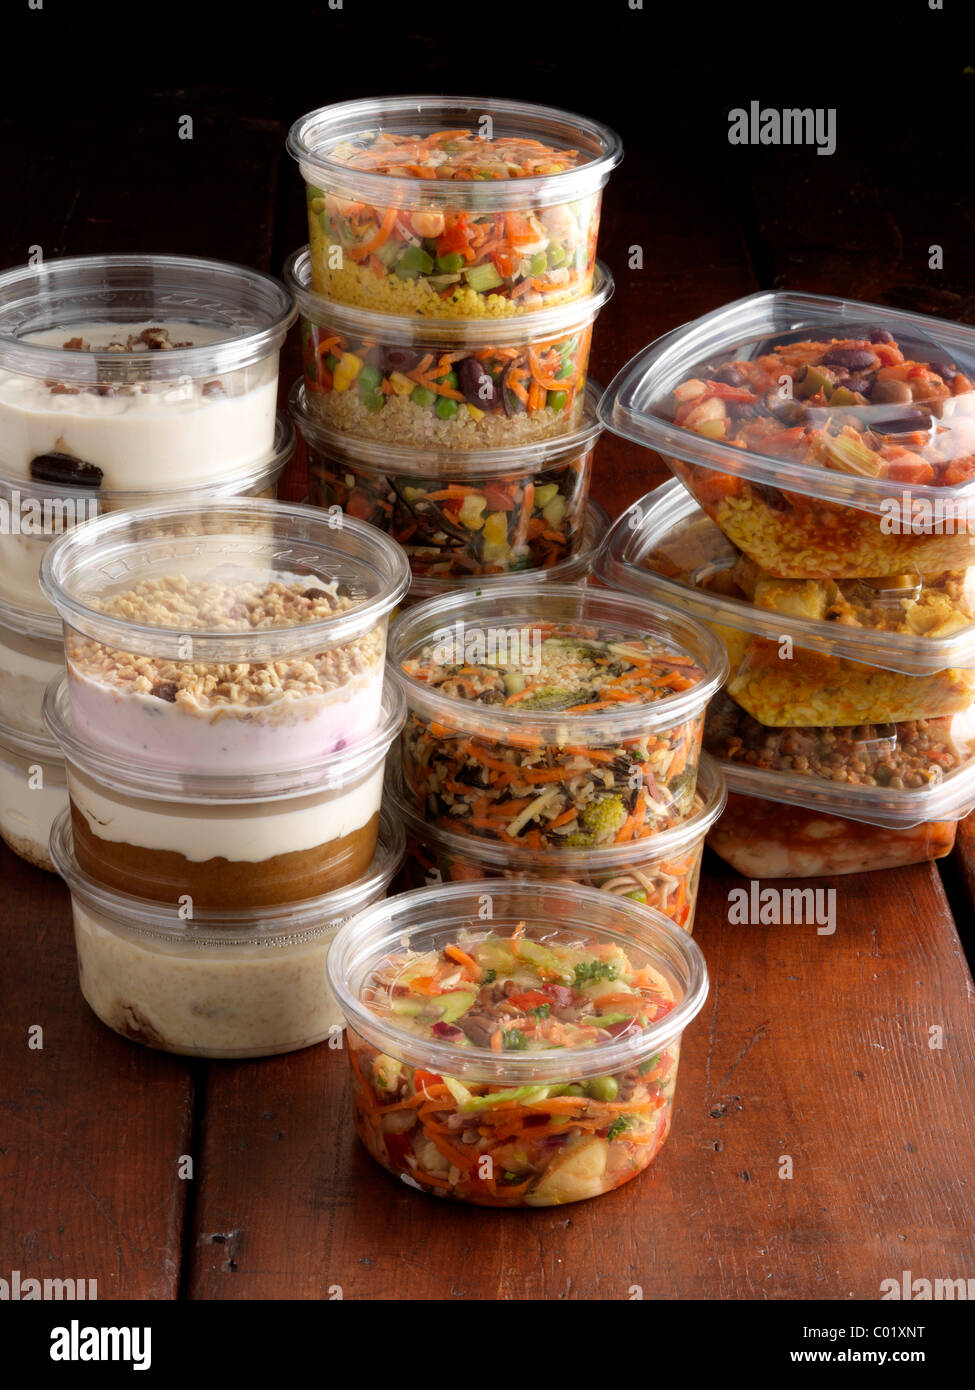 Vegetarian salads and desserts in plastic pots for takeaway - Stock Image